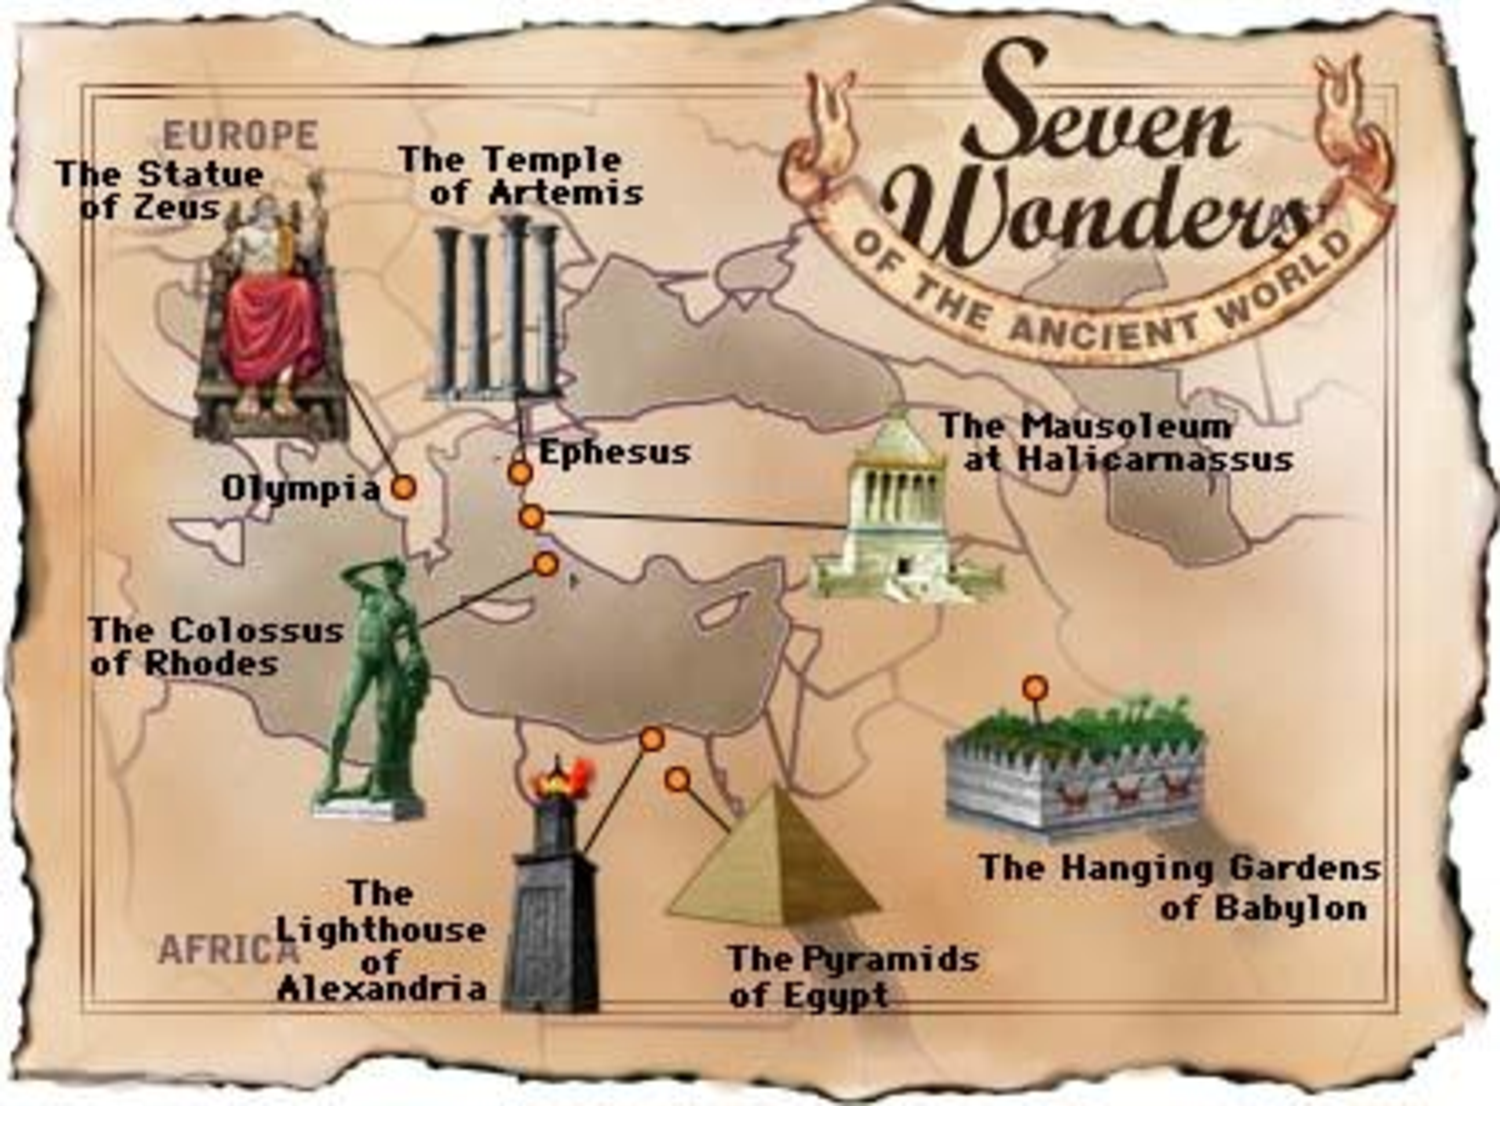 Old 7 Wonders of the World Seven ancient wonders Places that I